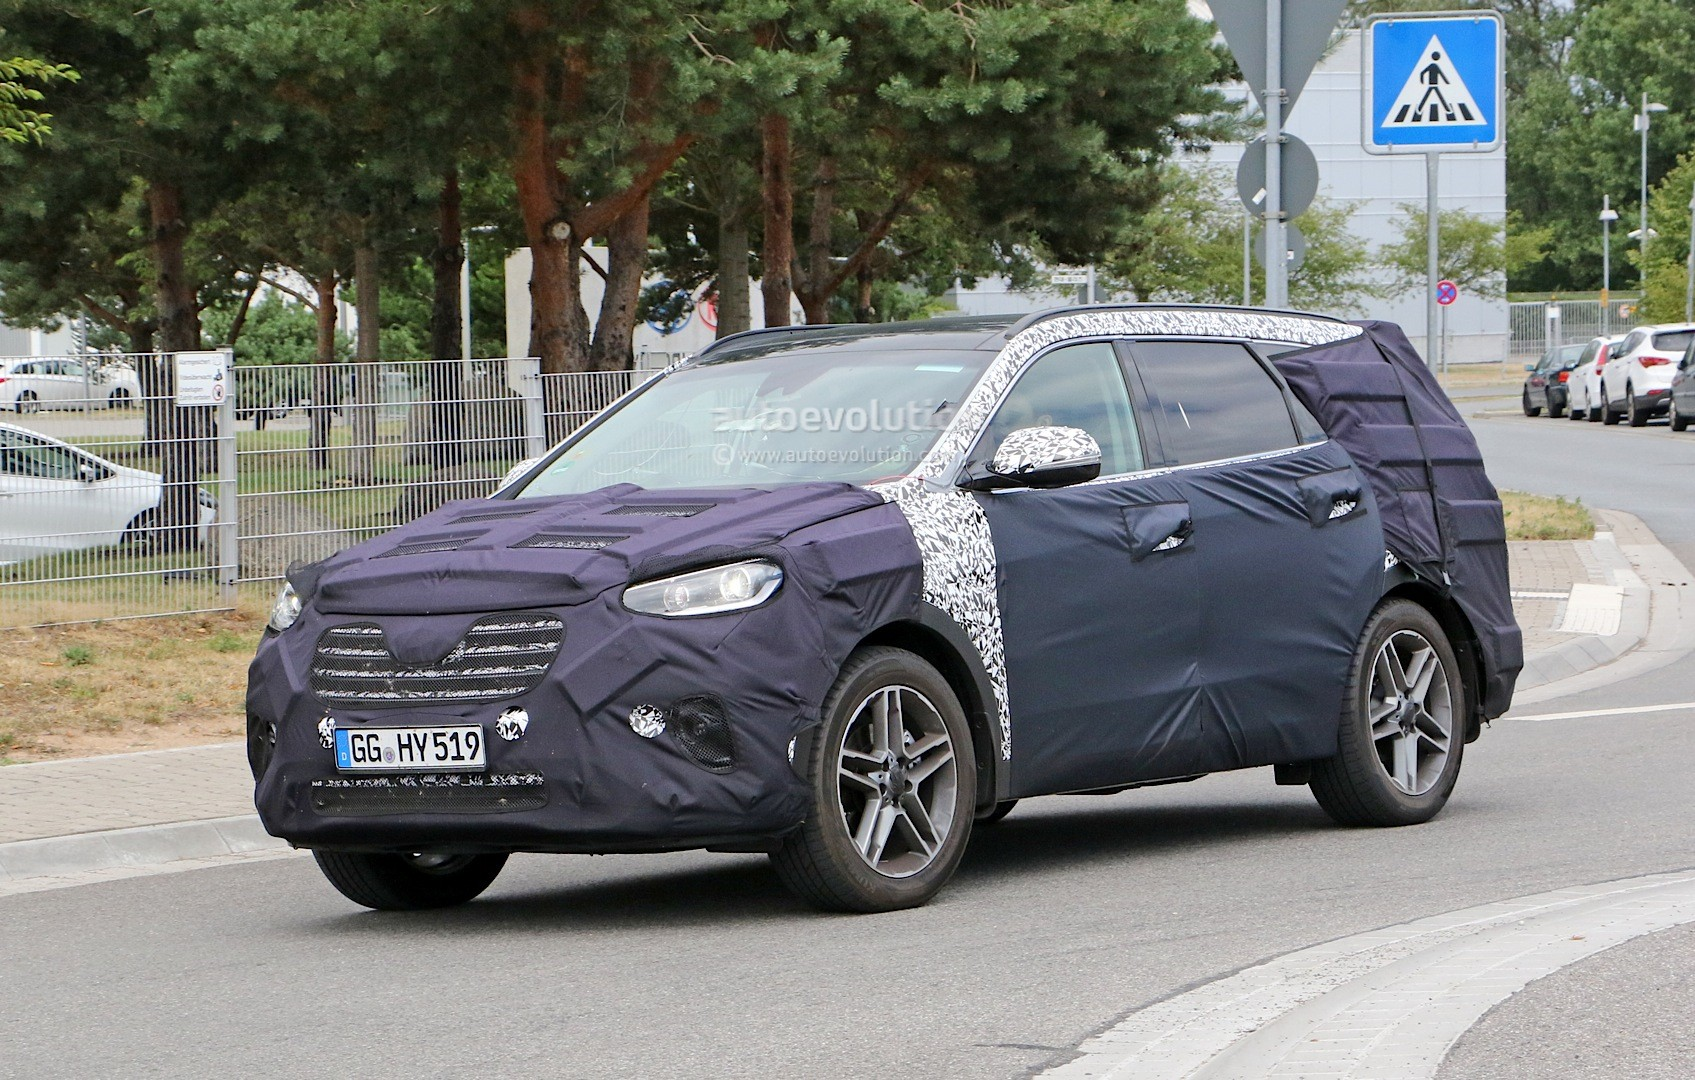 2016 hyundai grand santa fe facelift spied in germany autoevolution. Black Bedroom Furniture Sets. Home Design Ideas